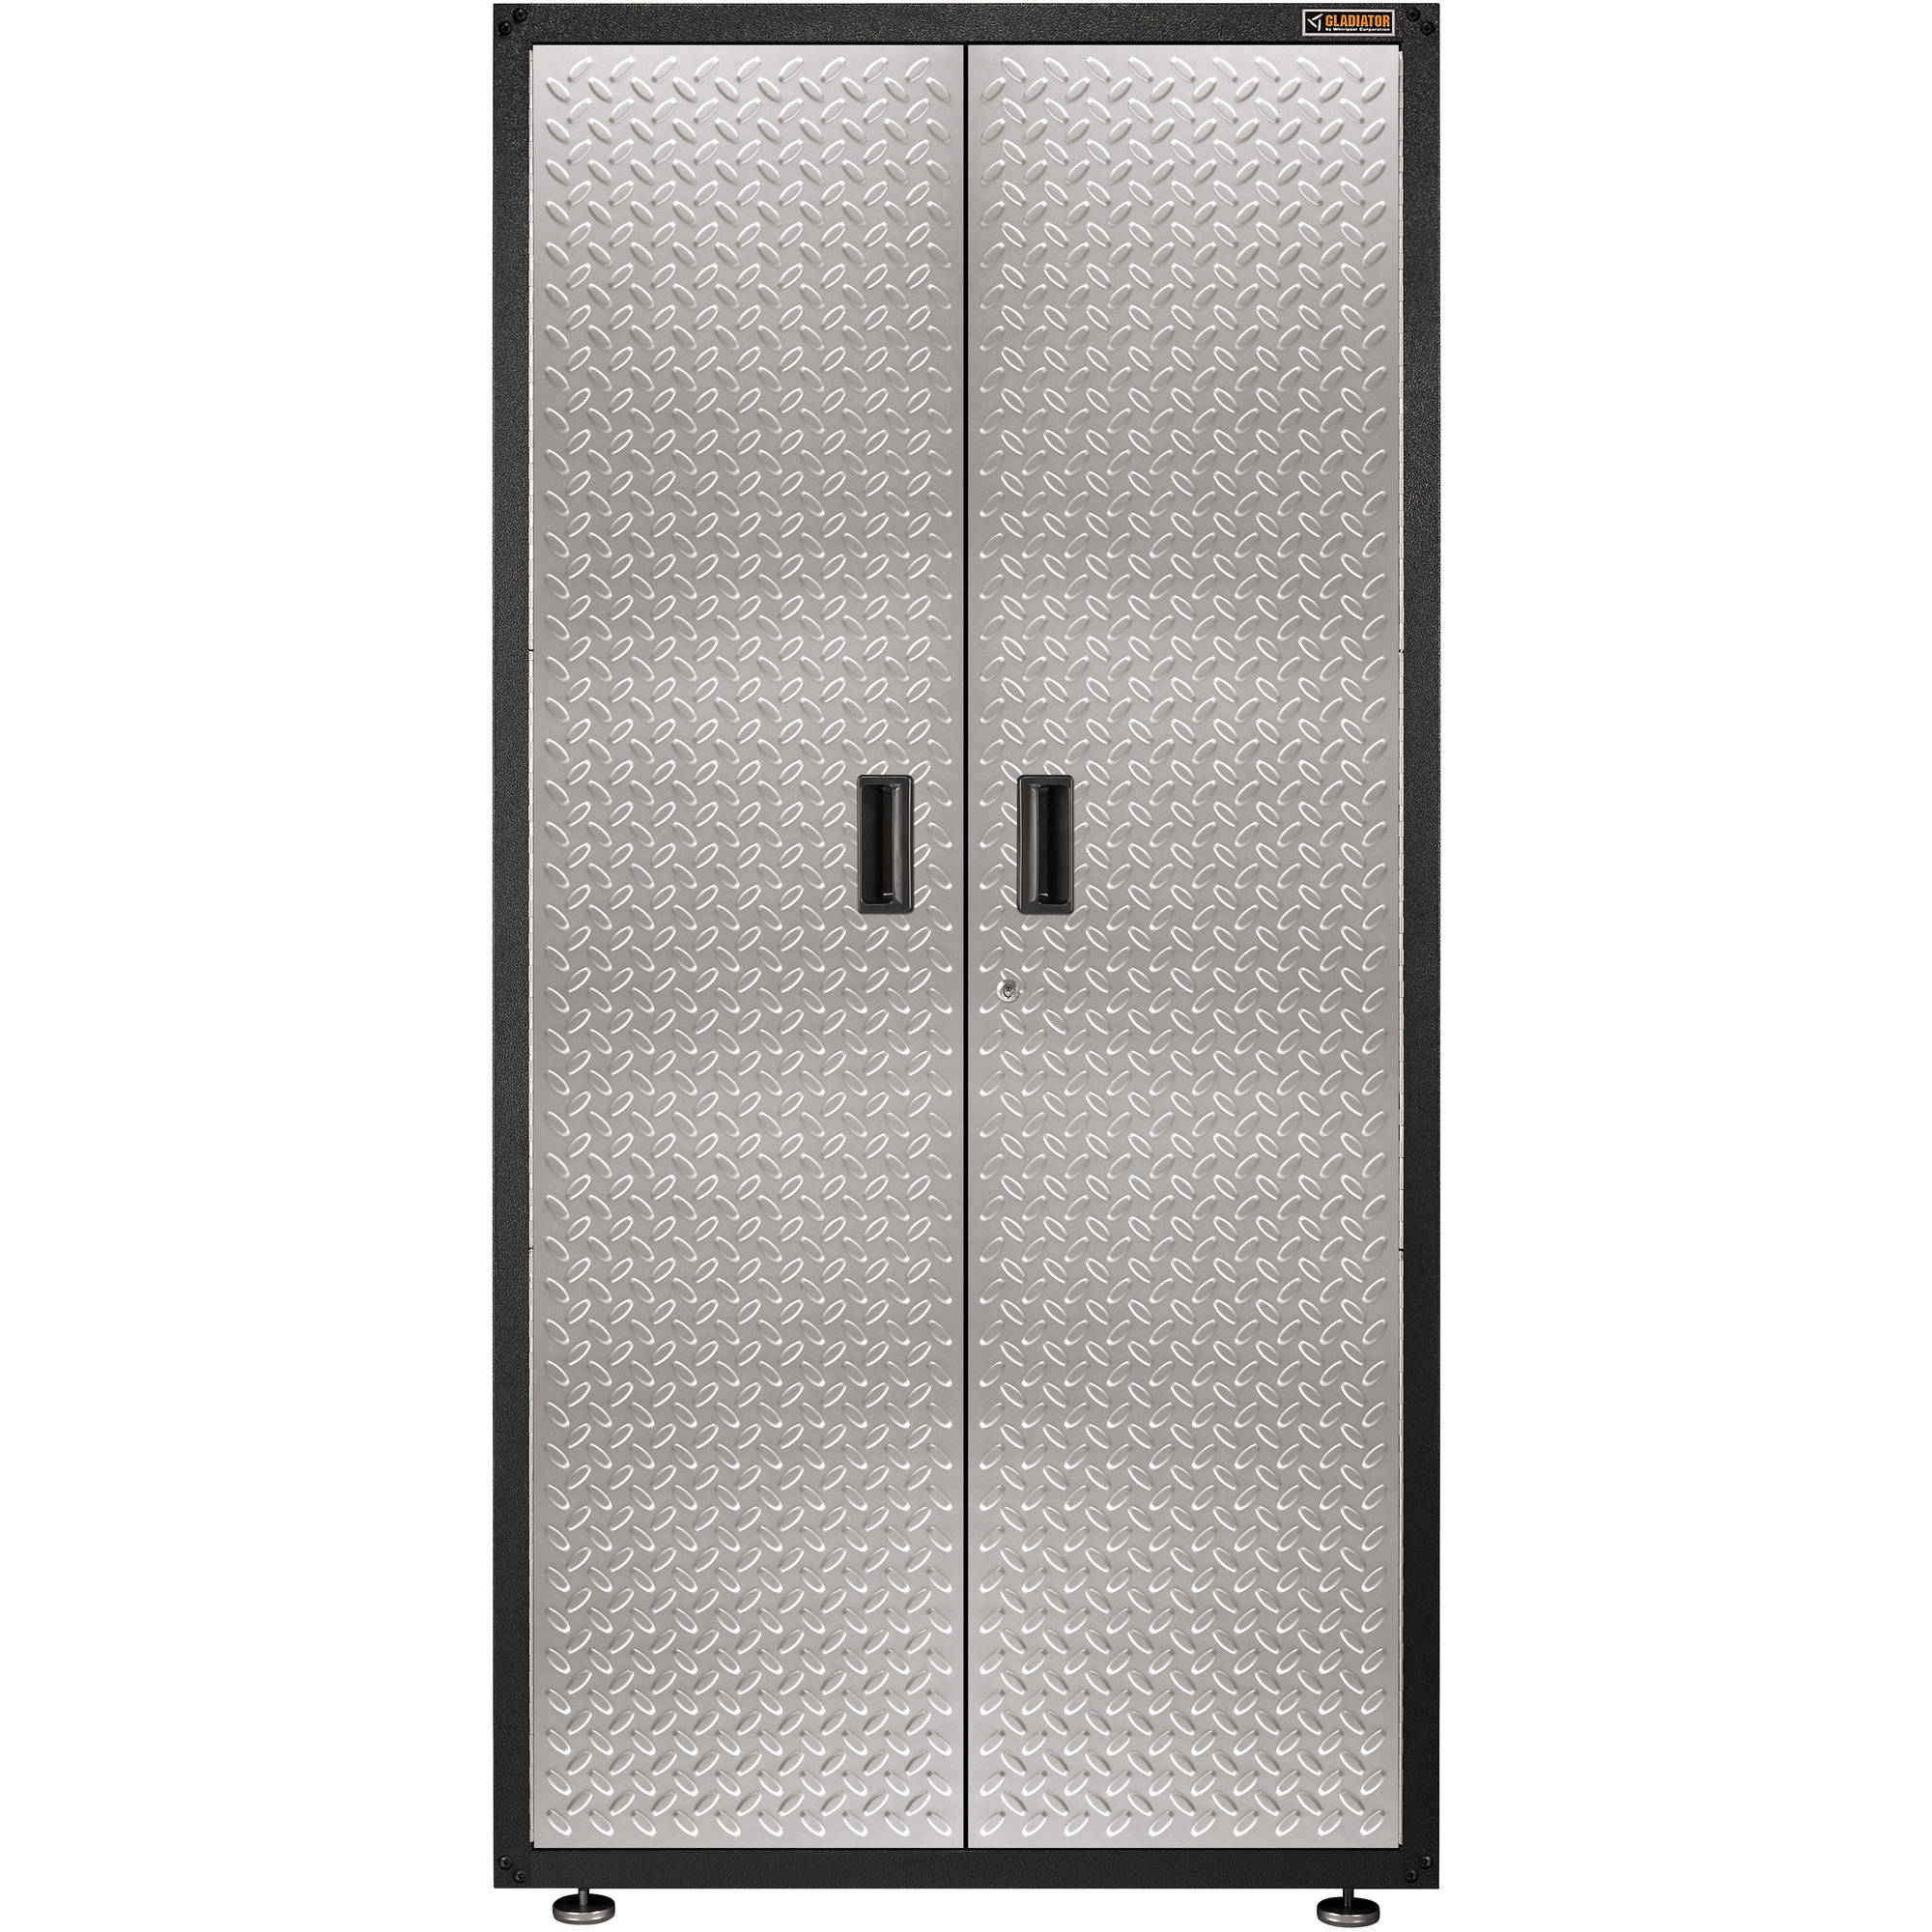 Gladiator Ready-To-Assemble 36 in. W x 18 in. D x 72 in. H Steel Freestanding Garage Cabinet in Silver Tread